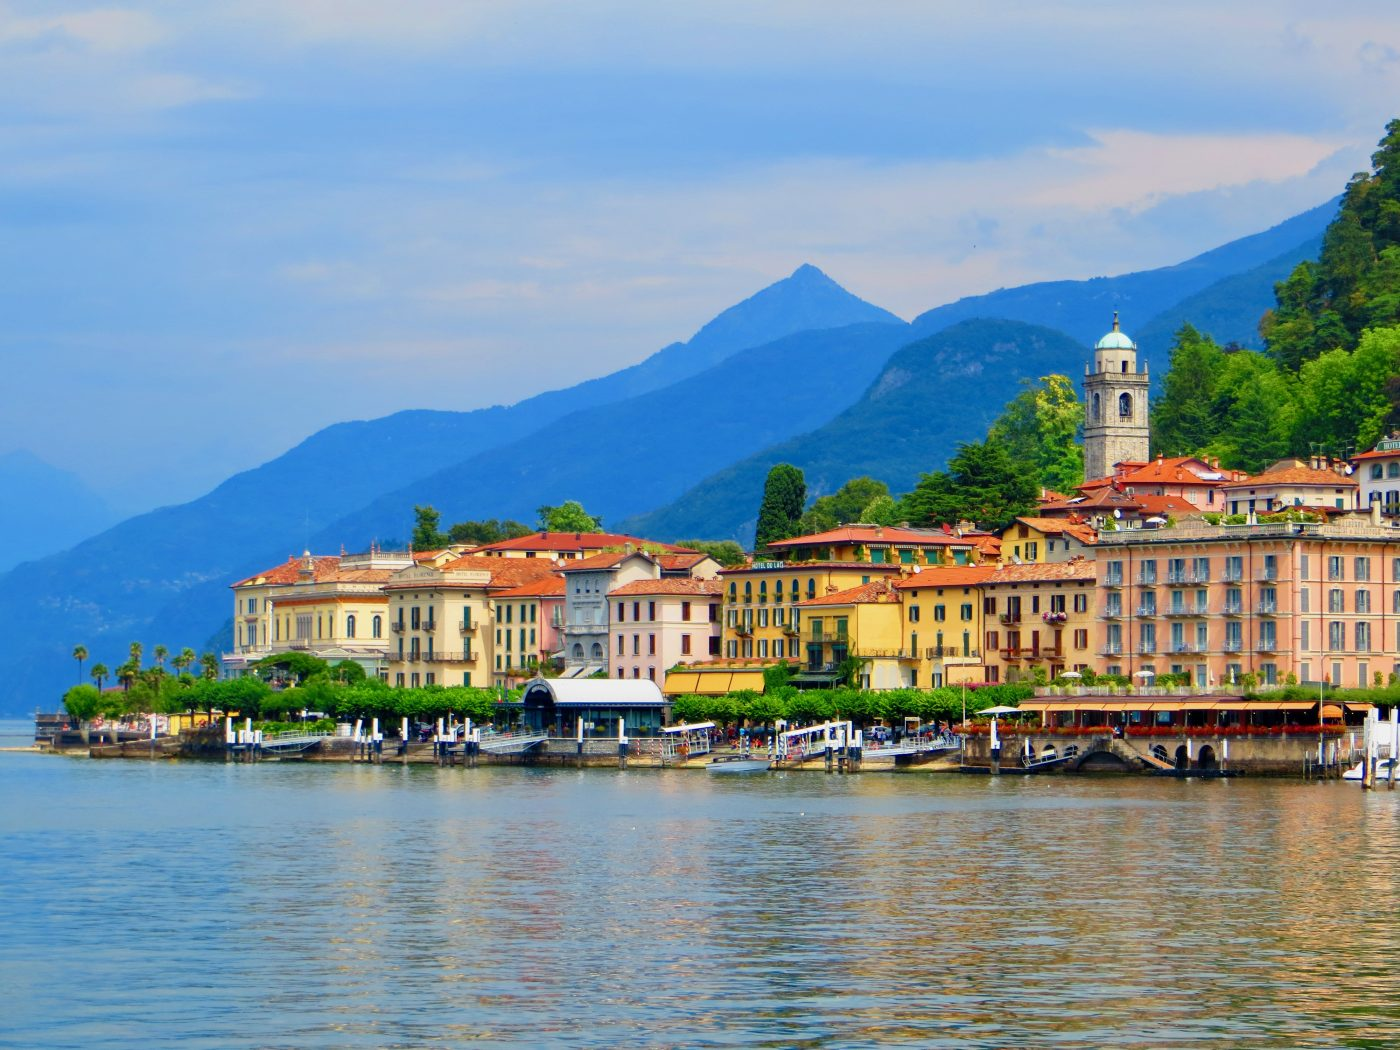 Lake Como, Italy – My View Of The Lake